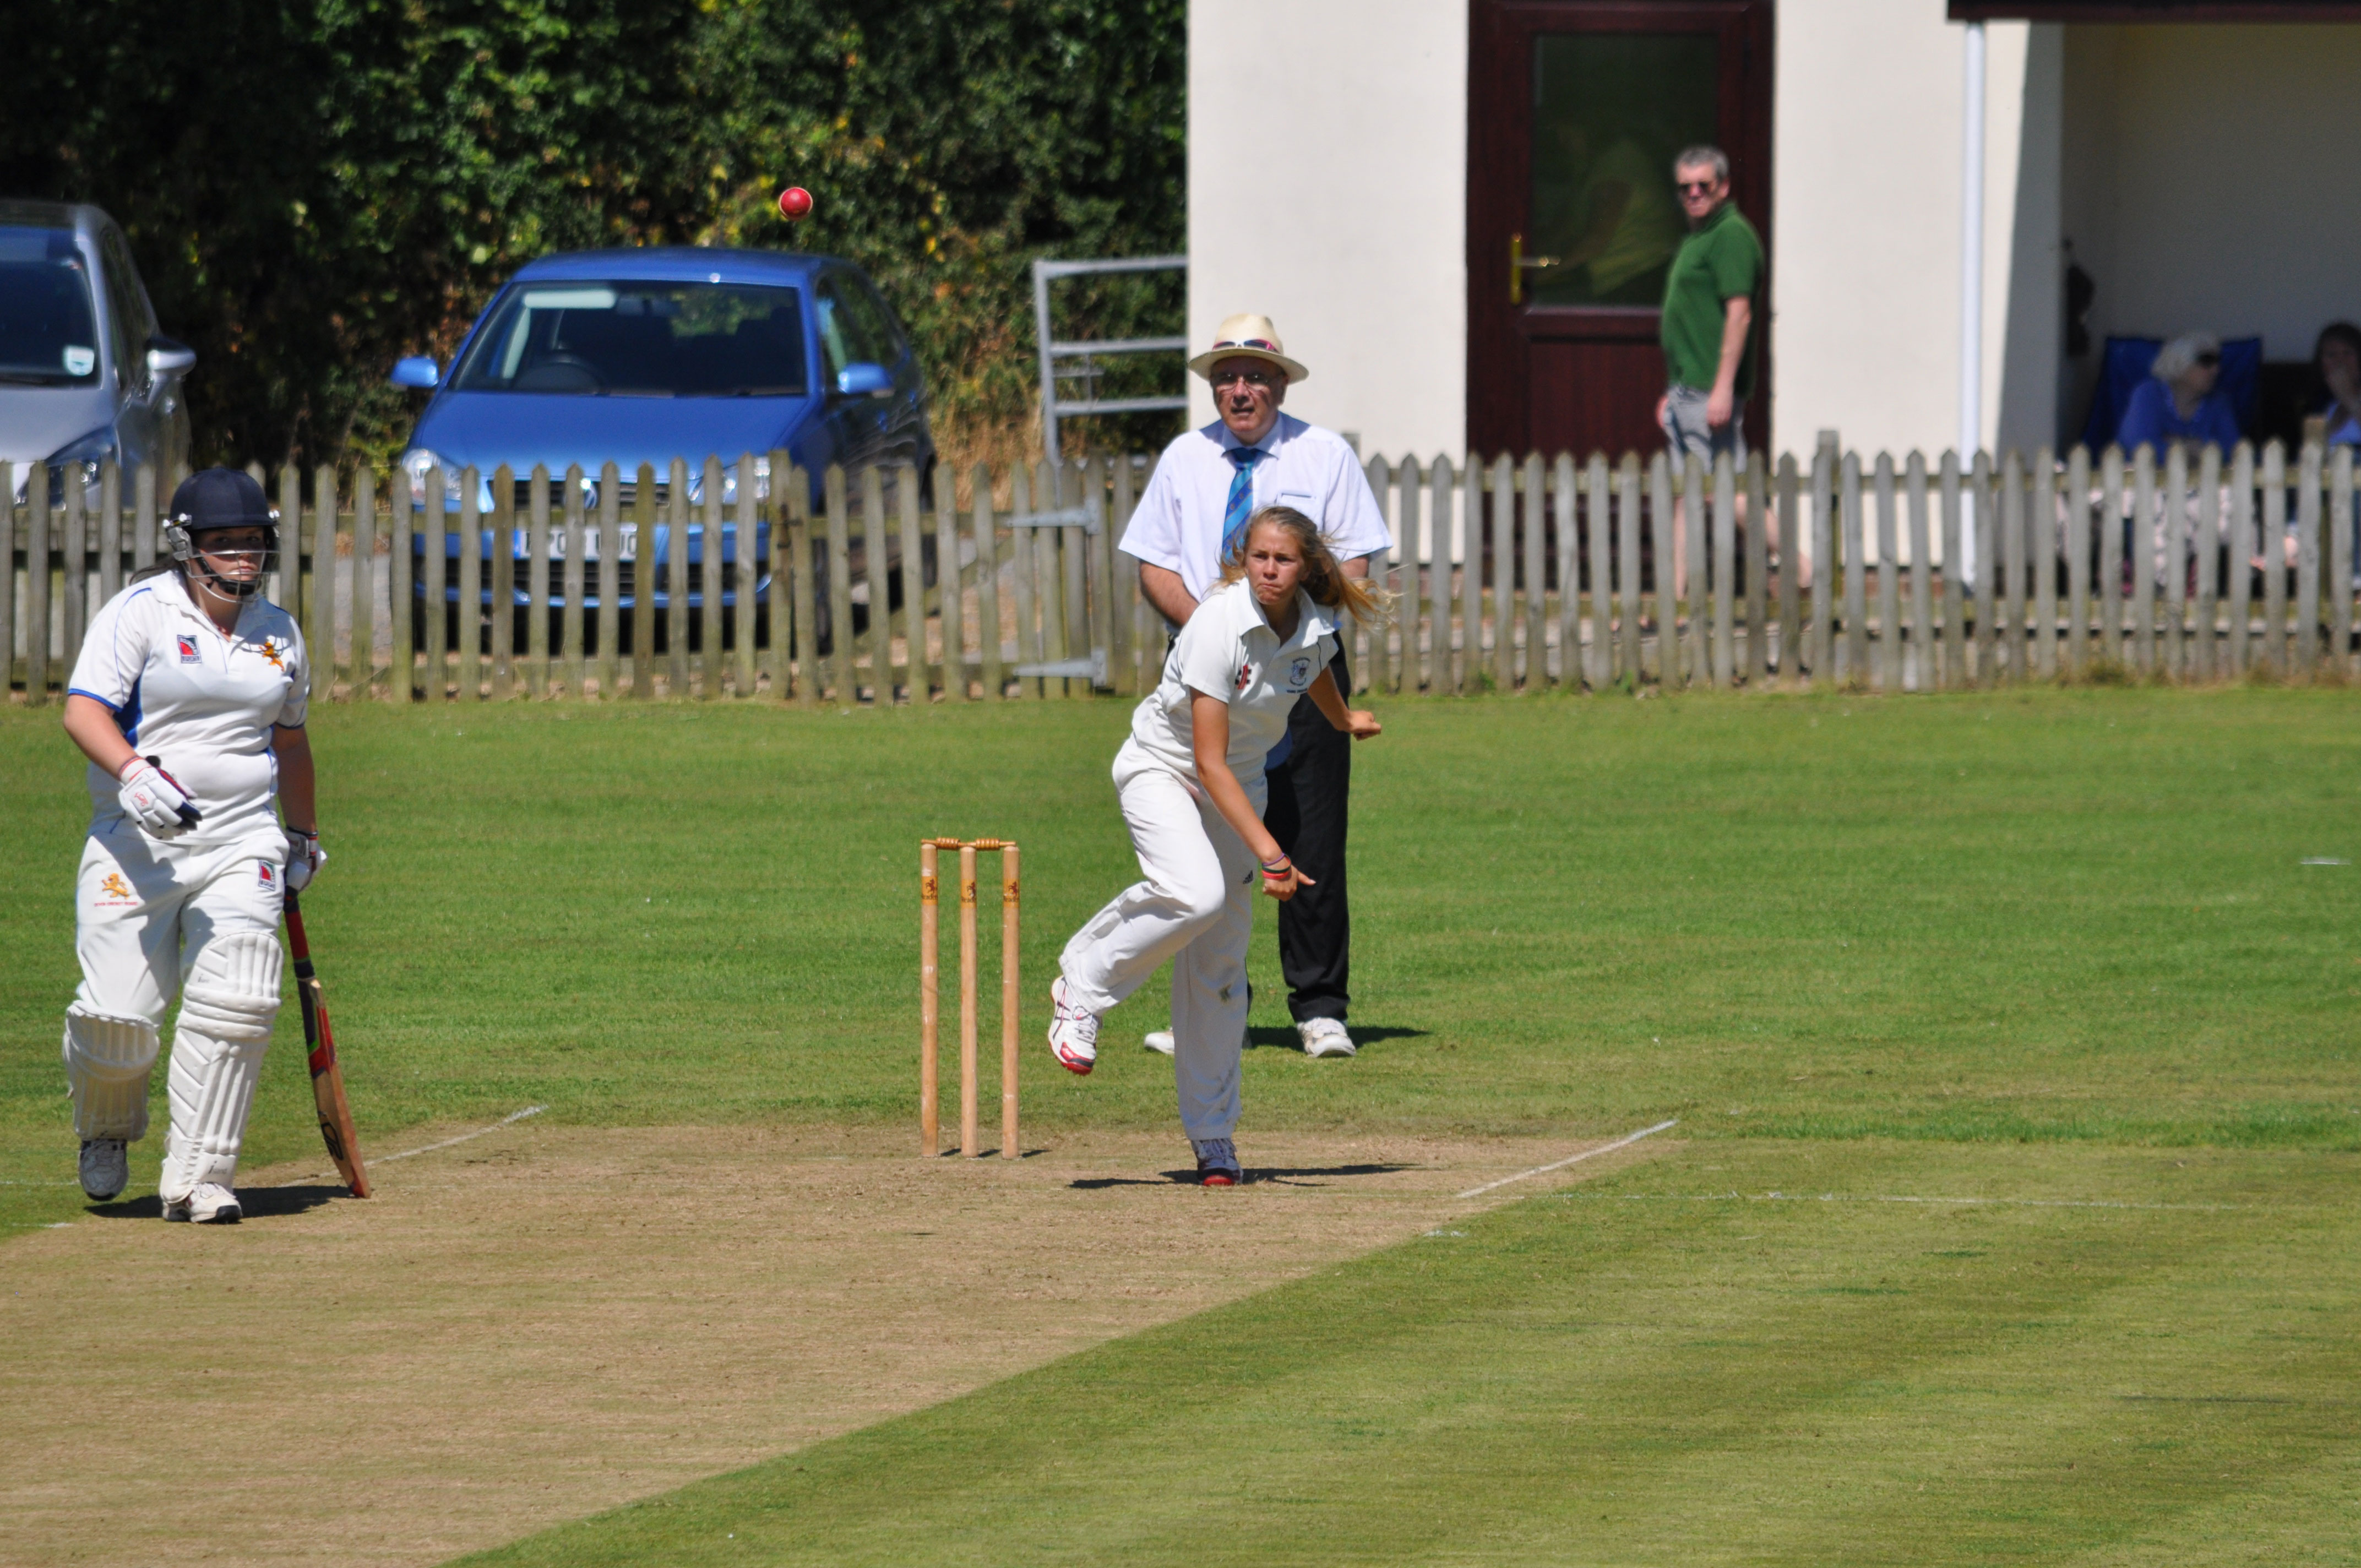 County match reports – week ending July 11